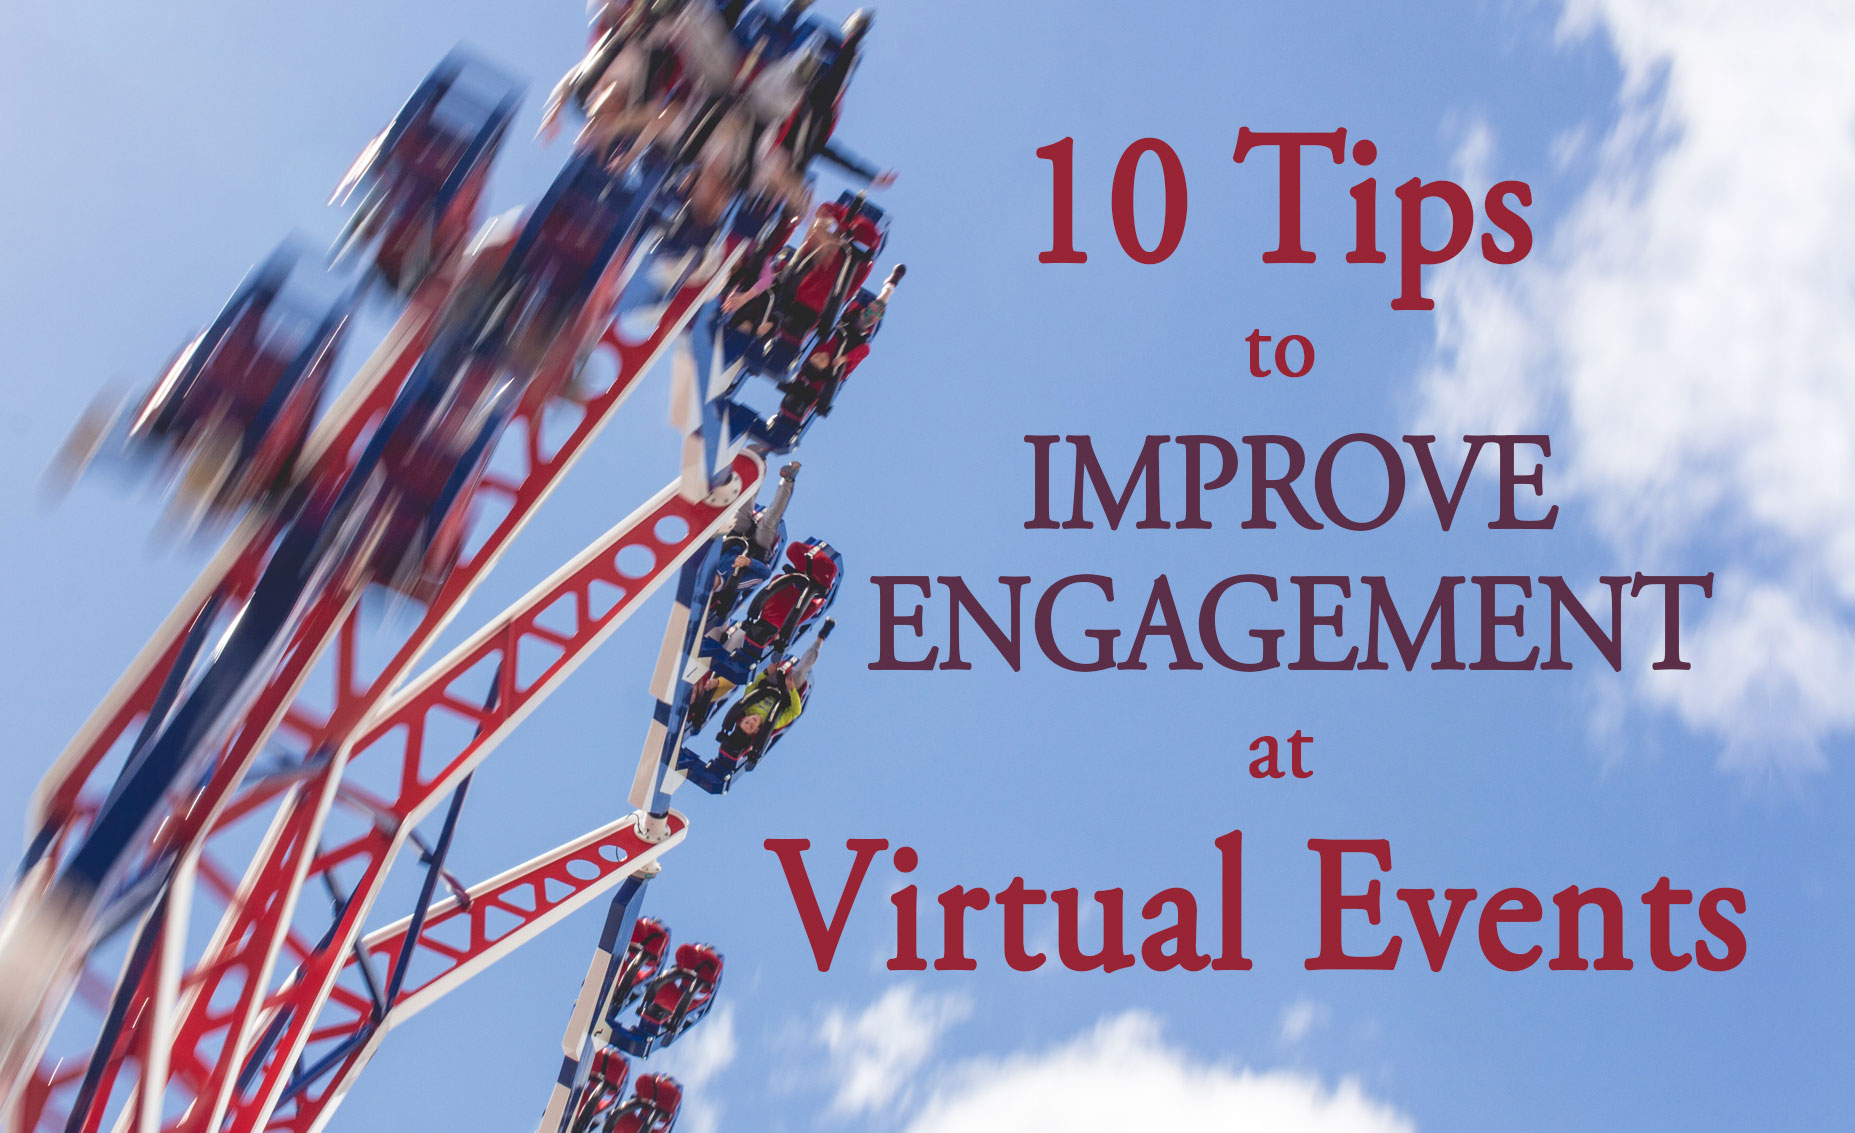 Whether you're an event organizer, or an exhibitor, if you're involved in a virtual event it's essential that you drive as much engagement as possible. Here are 10 tips to improve engagement at your virtual events...